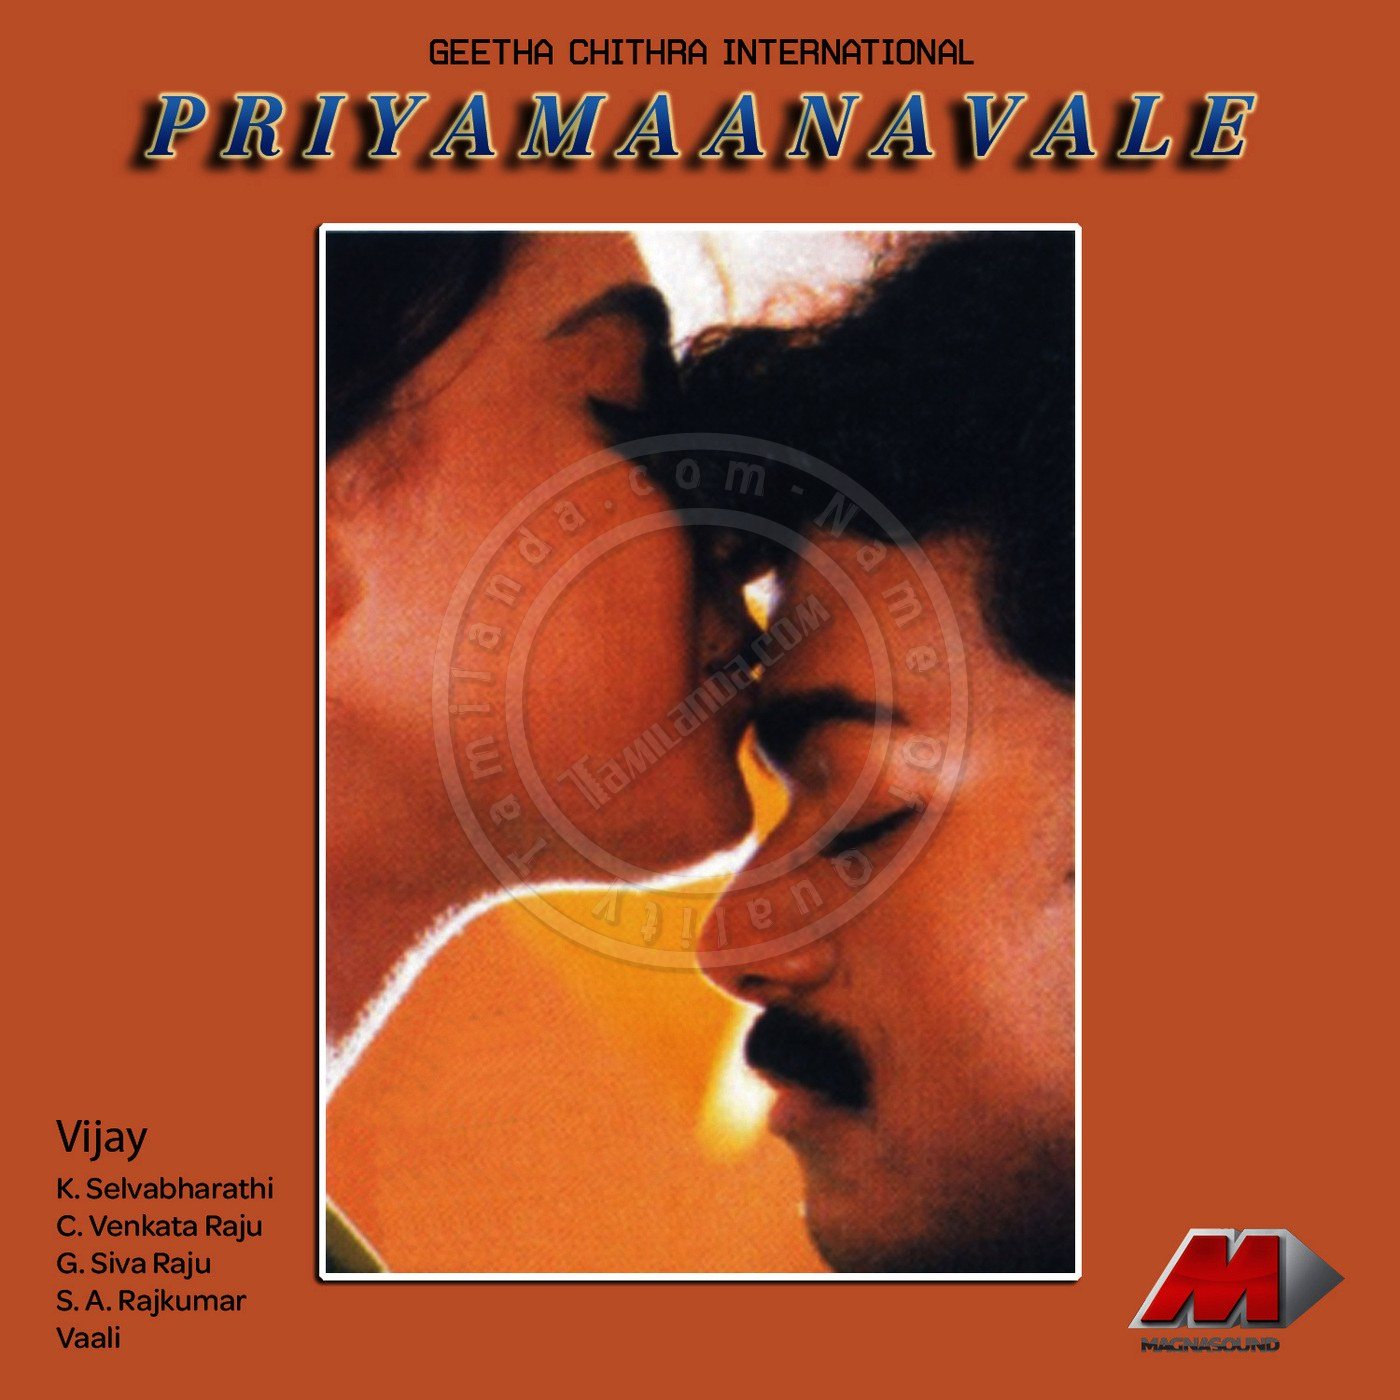 Priyamanavale FLAC/WAV Songs [Sony Music]